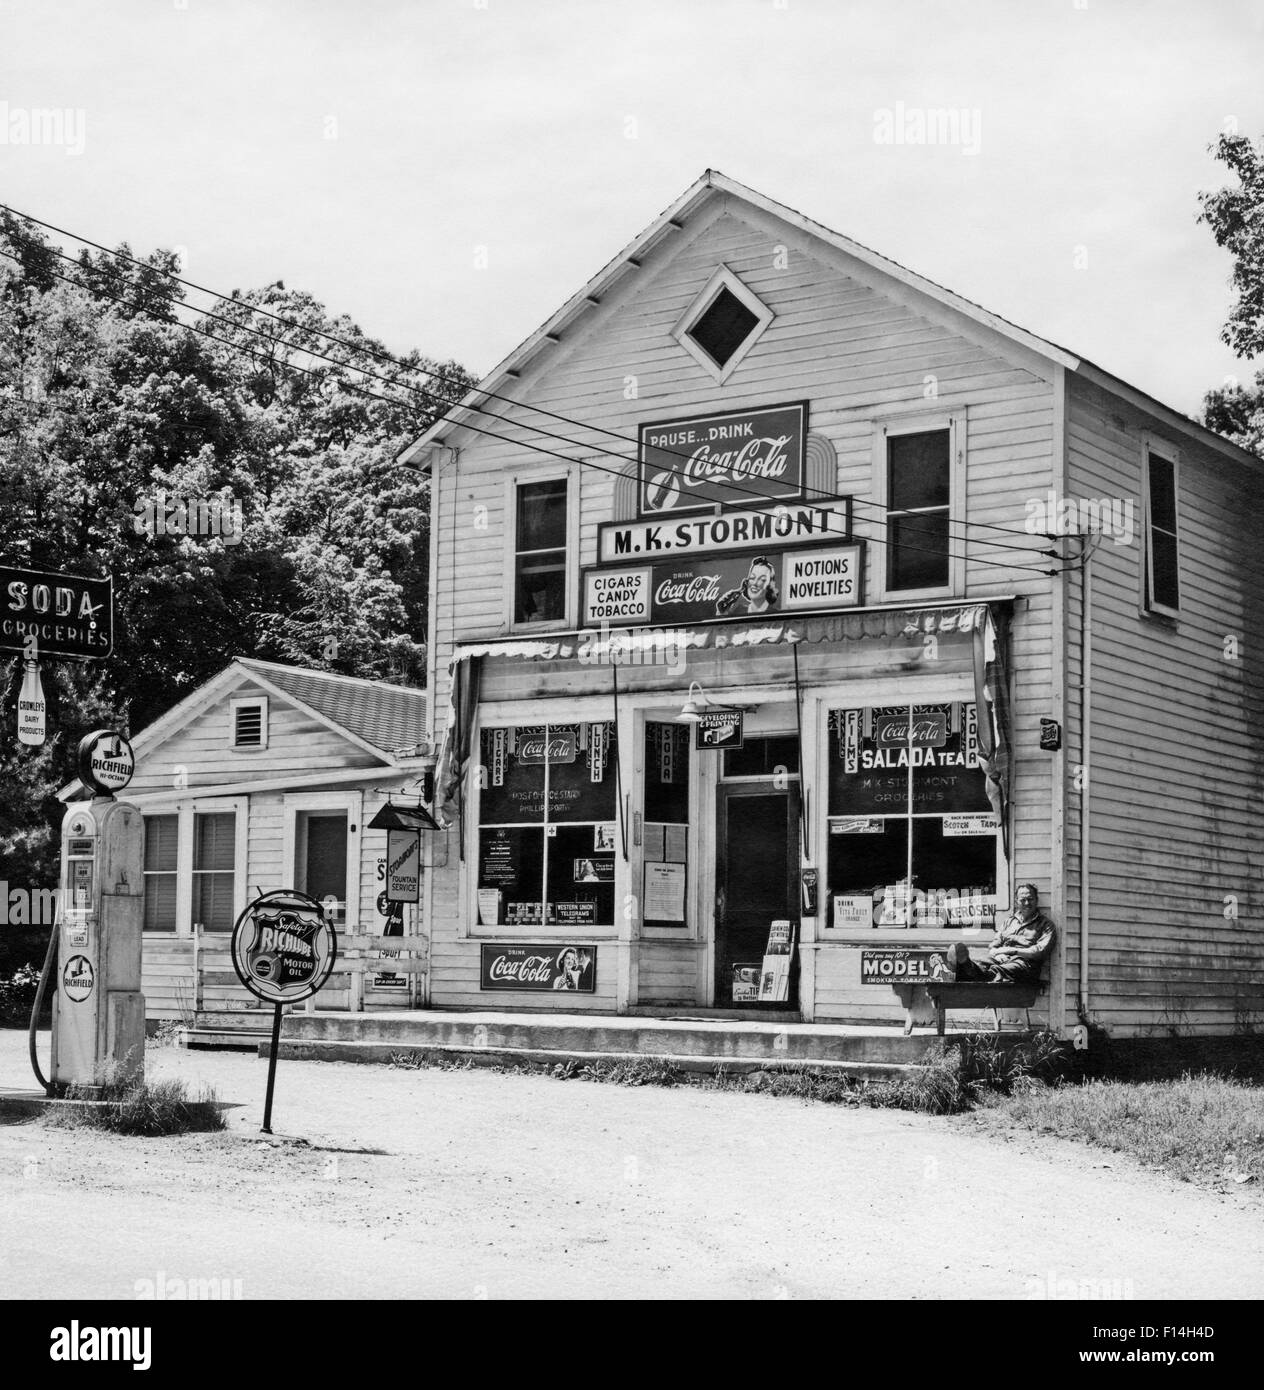 General Store Stock Photos General Store Stock Images: 1940s 1950s MAN STILLING ON PORCH GENERAL STORE AND